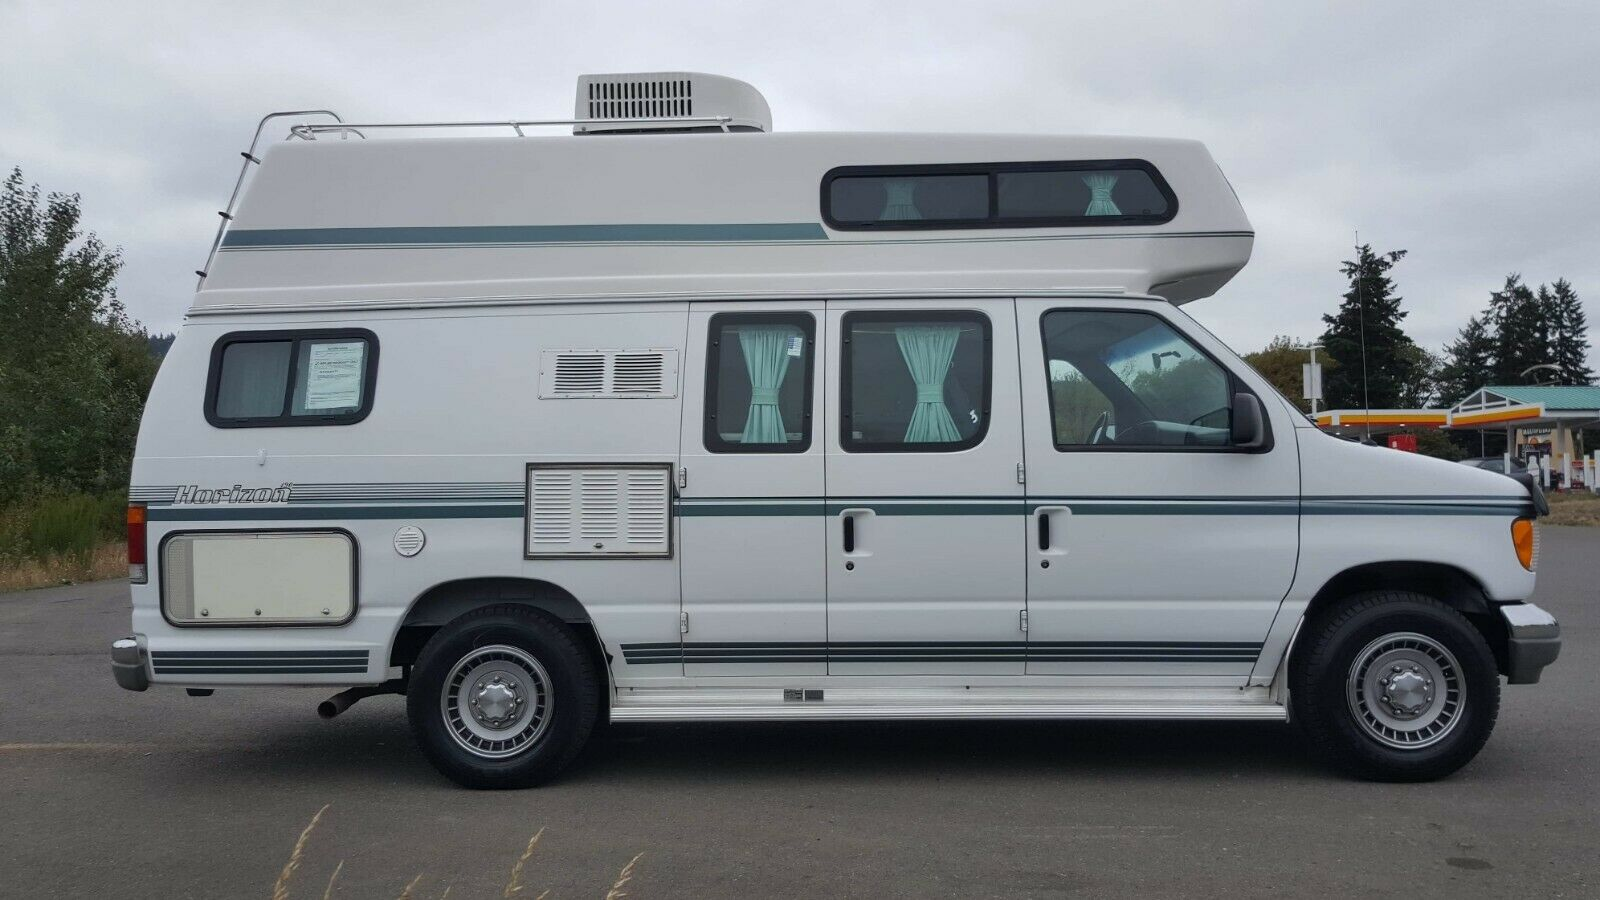 ready for adventures 1995 Ford Horizon 190 camper